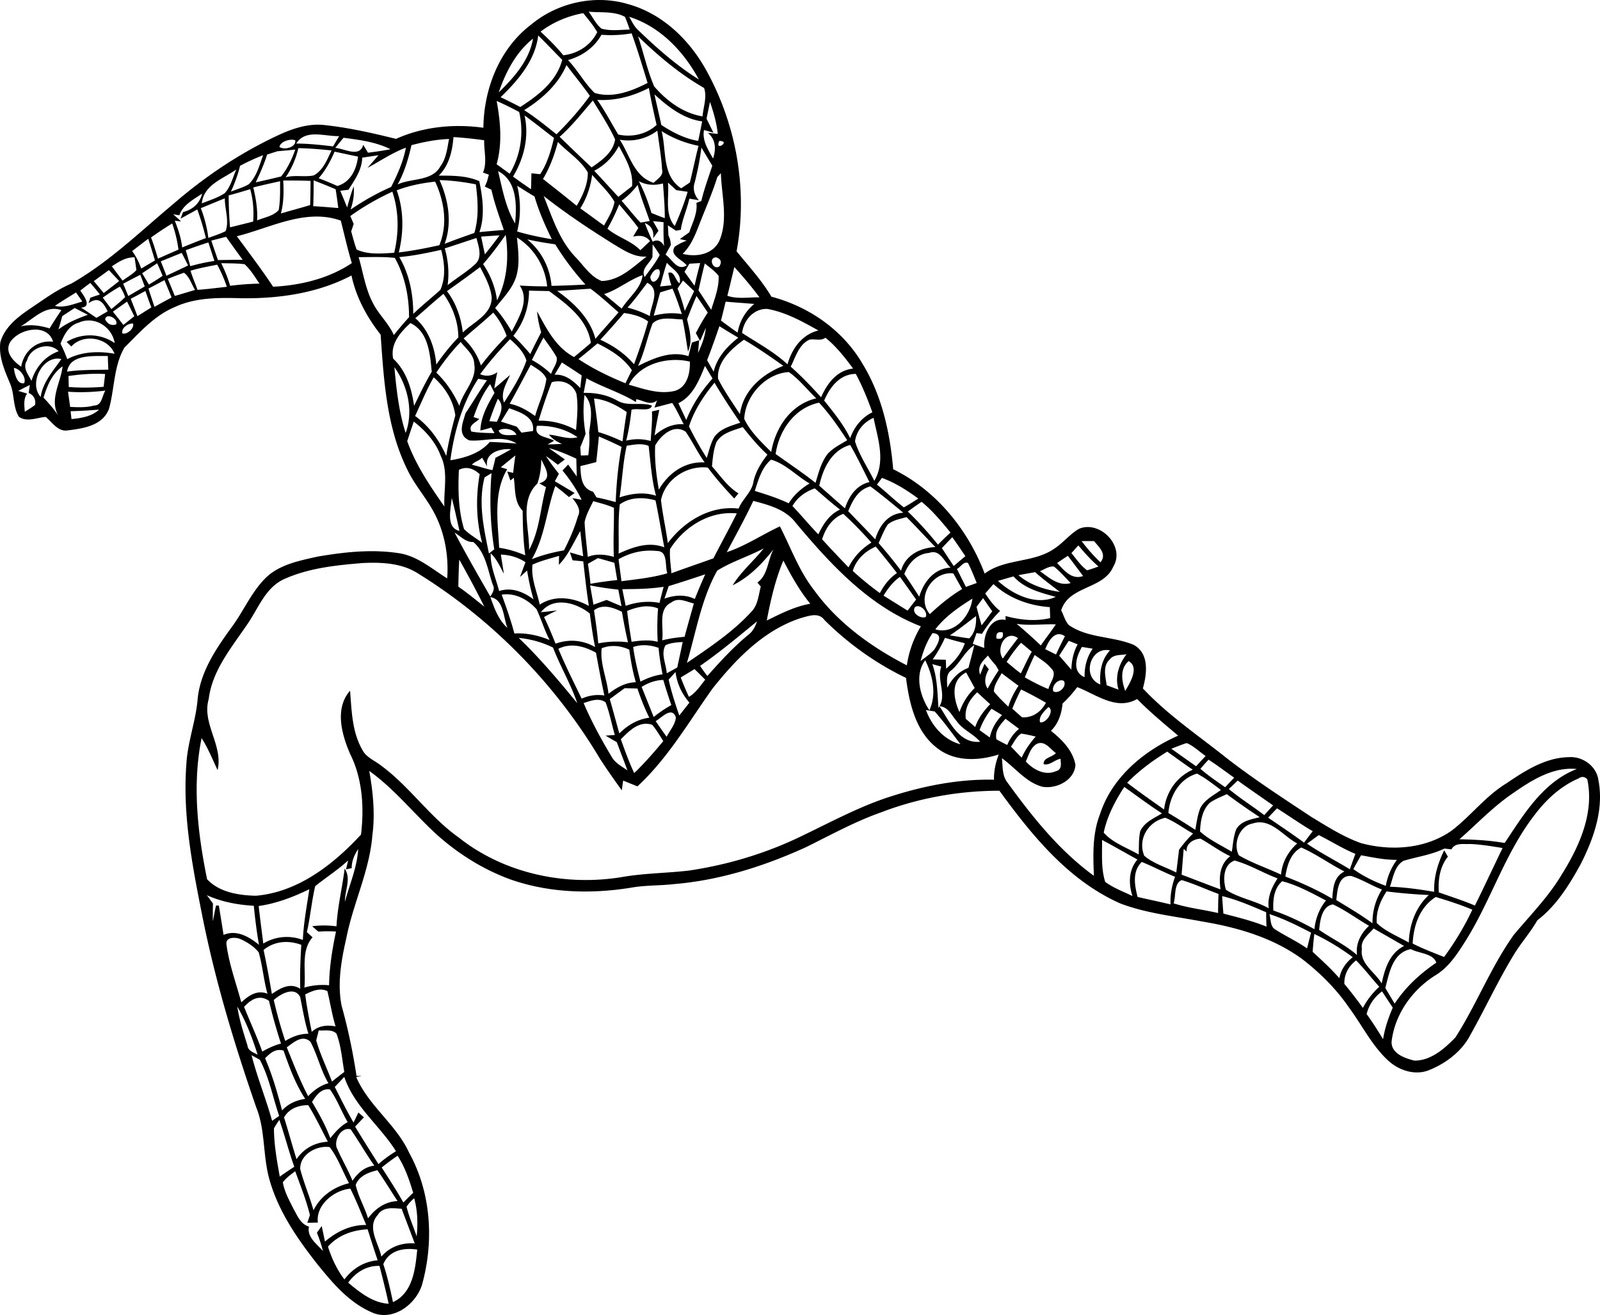 Universal image regarding spiderman printable